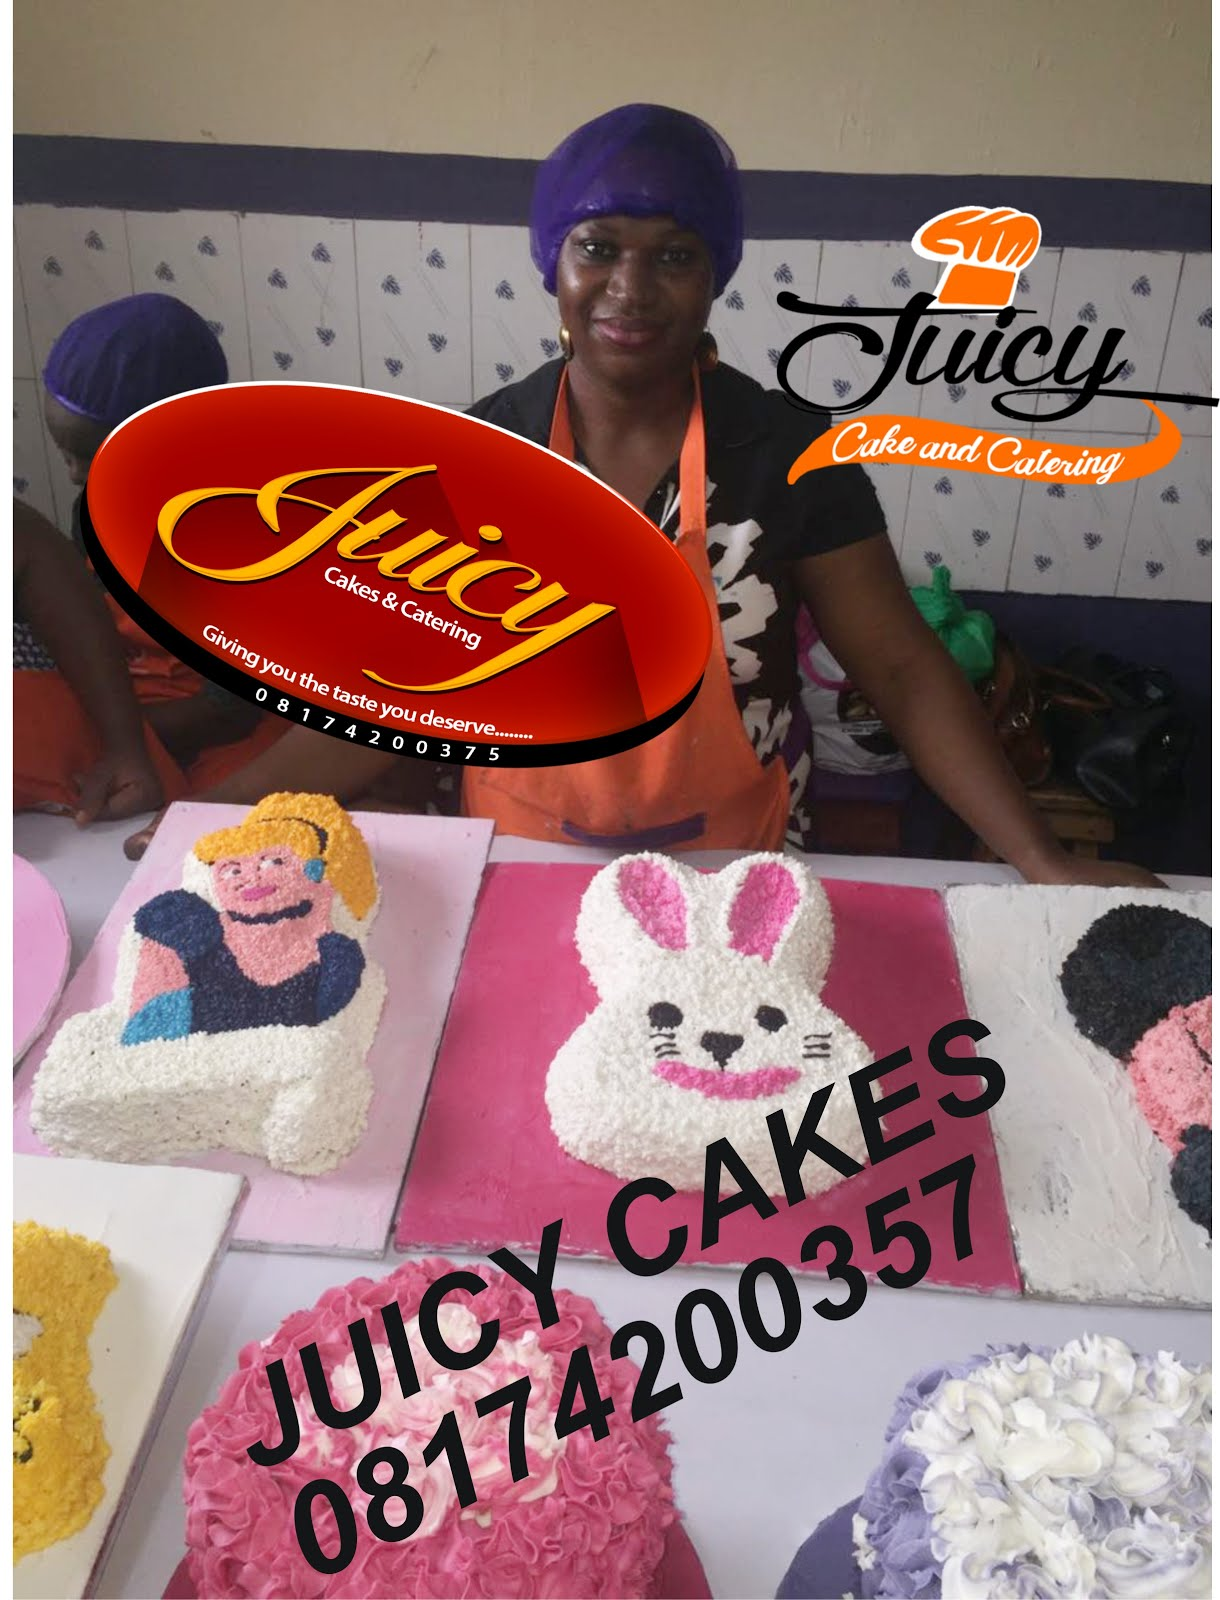 JUICY CAKES  CATERING INTRODUCING CAKE CRAFT SCHOOL COMING UP SOON